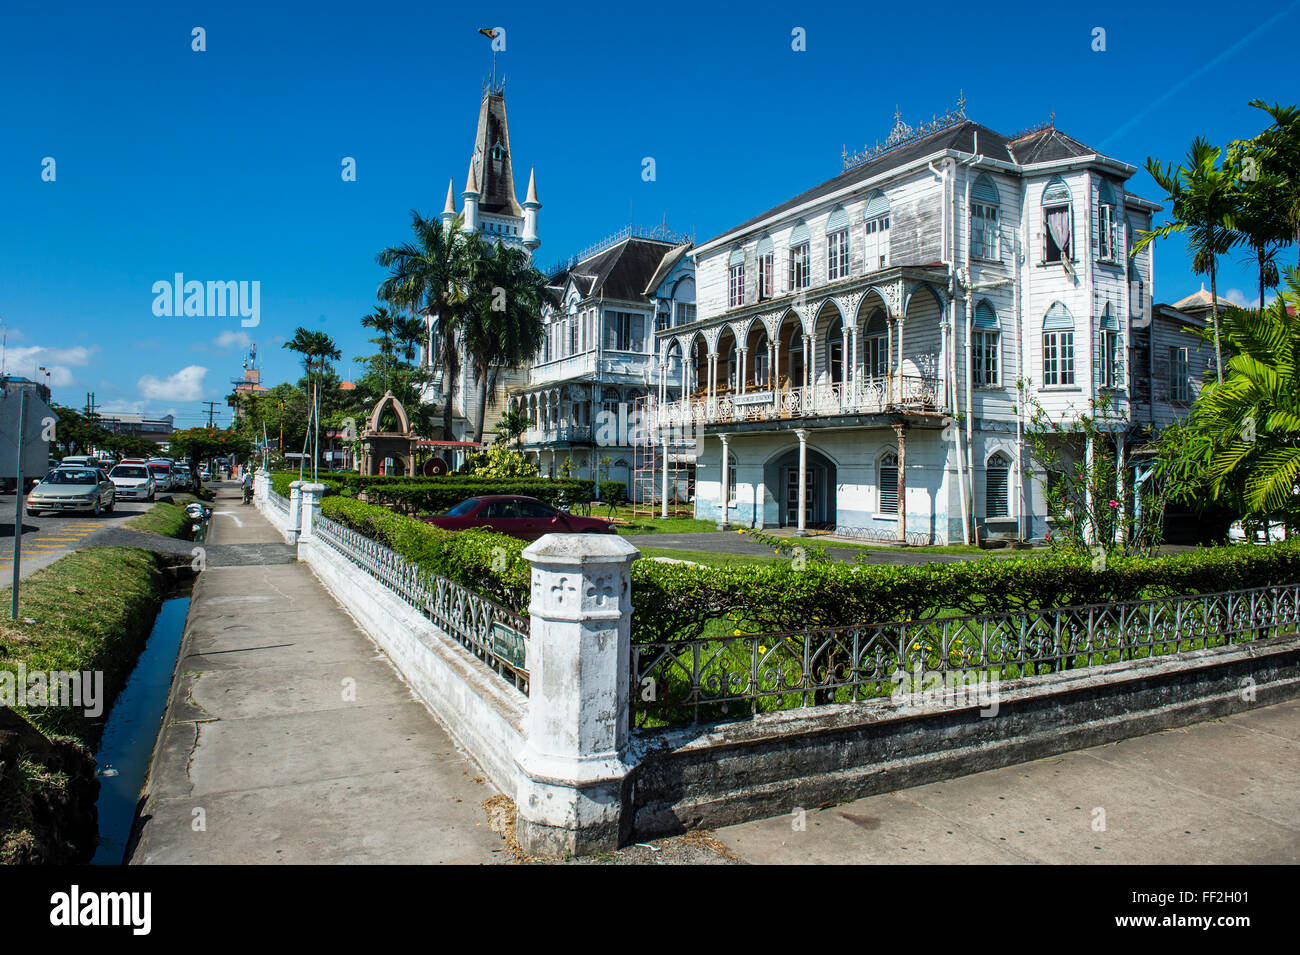 CoRMoniaRM buiRMding in Georgetown, Guyana, South America - Stock Image